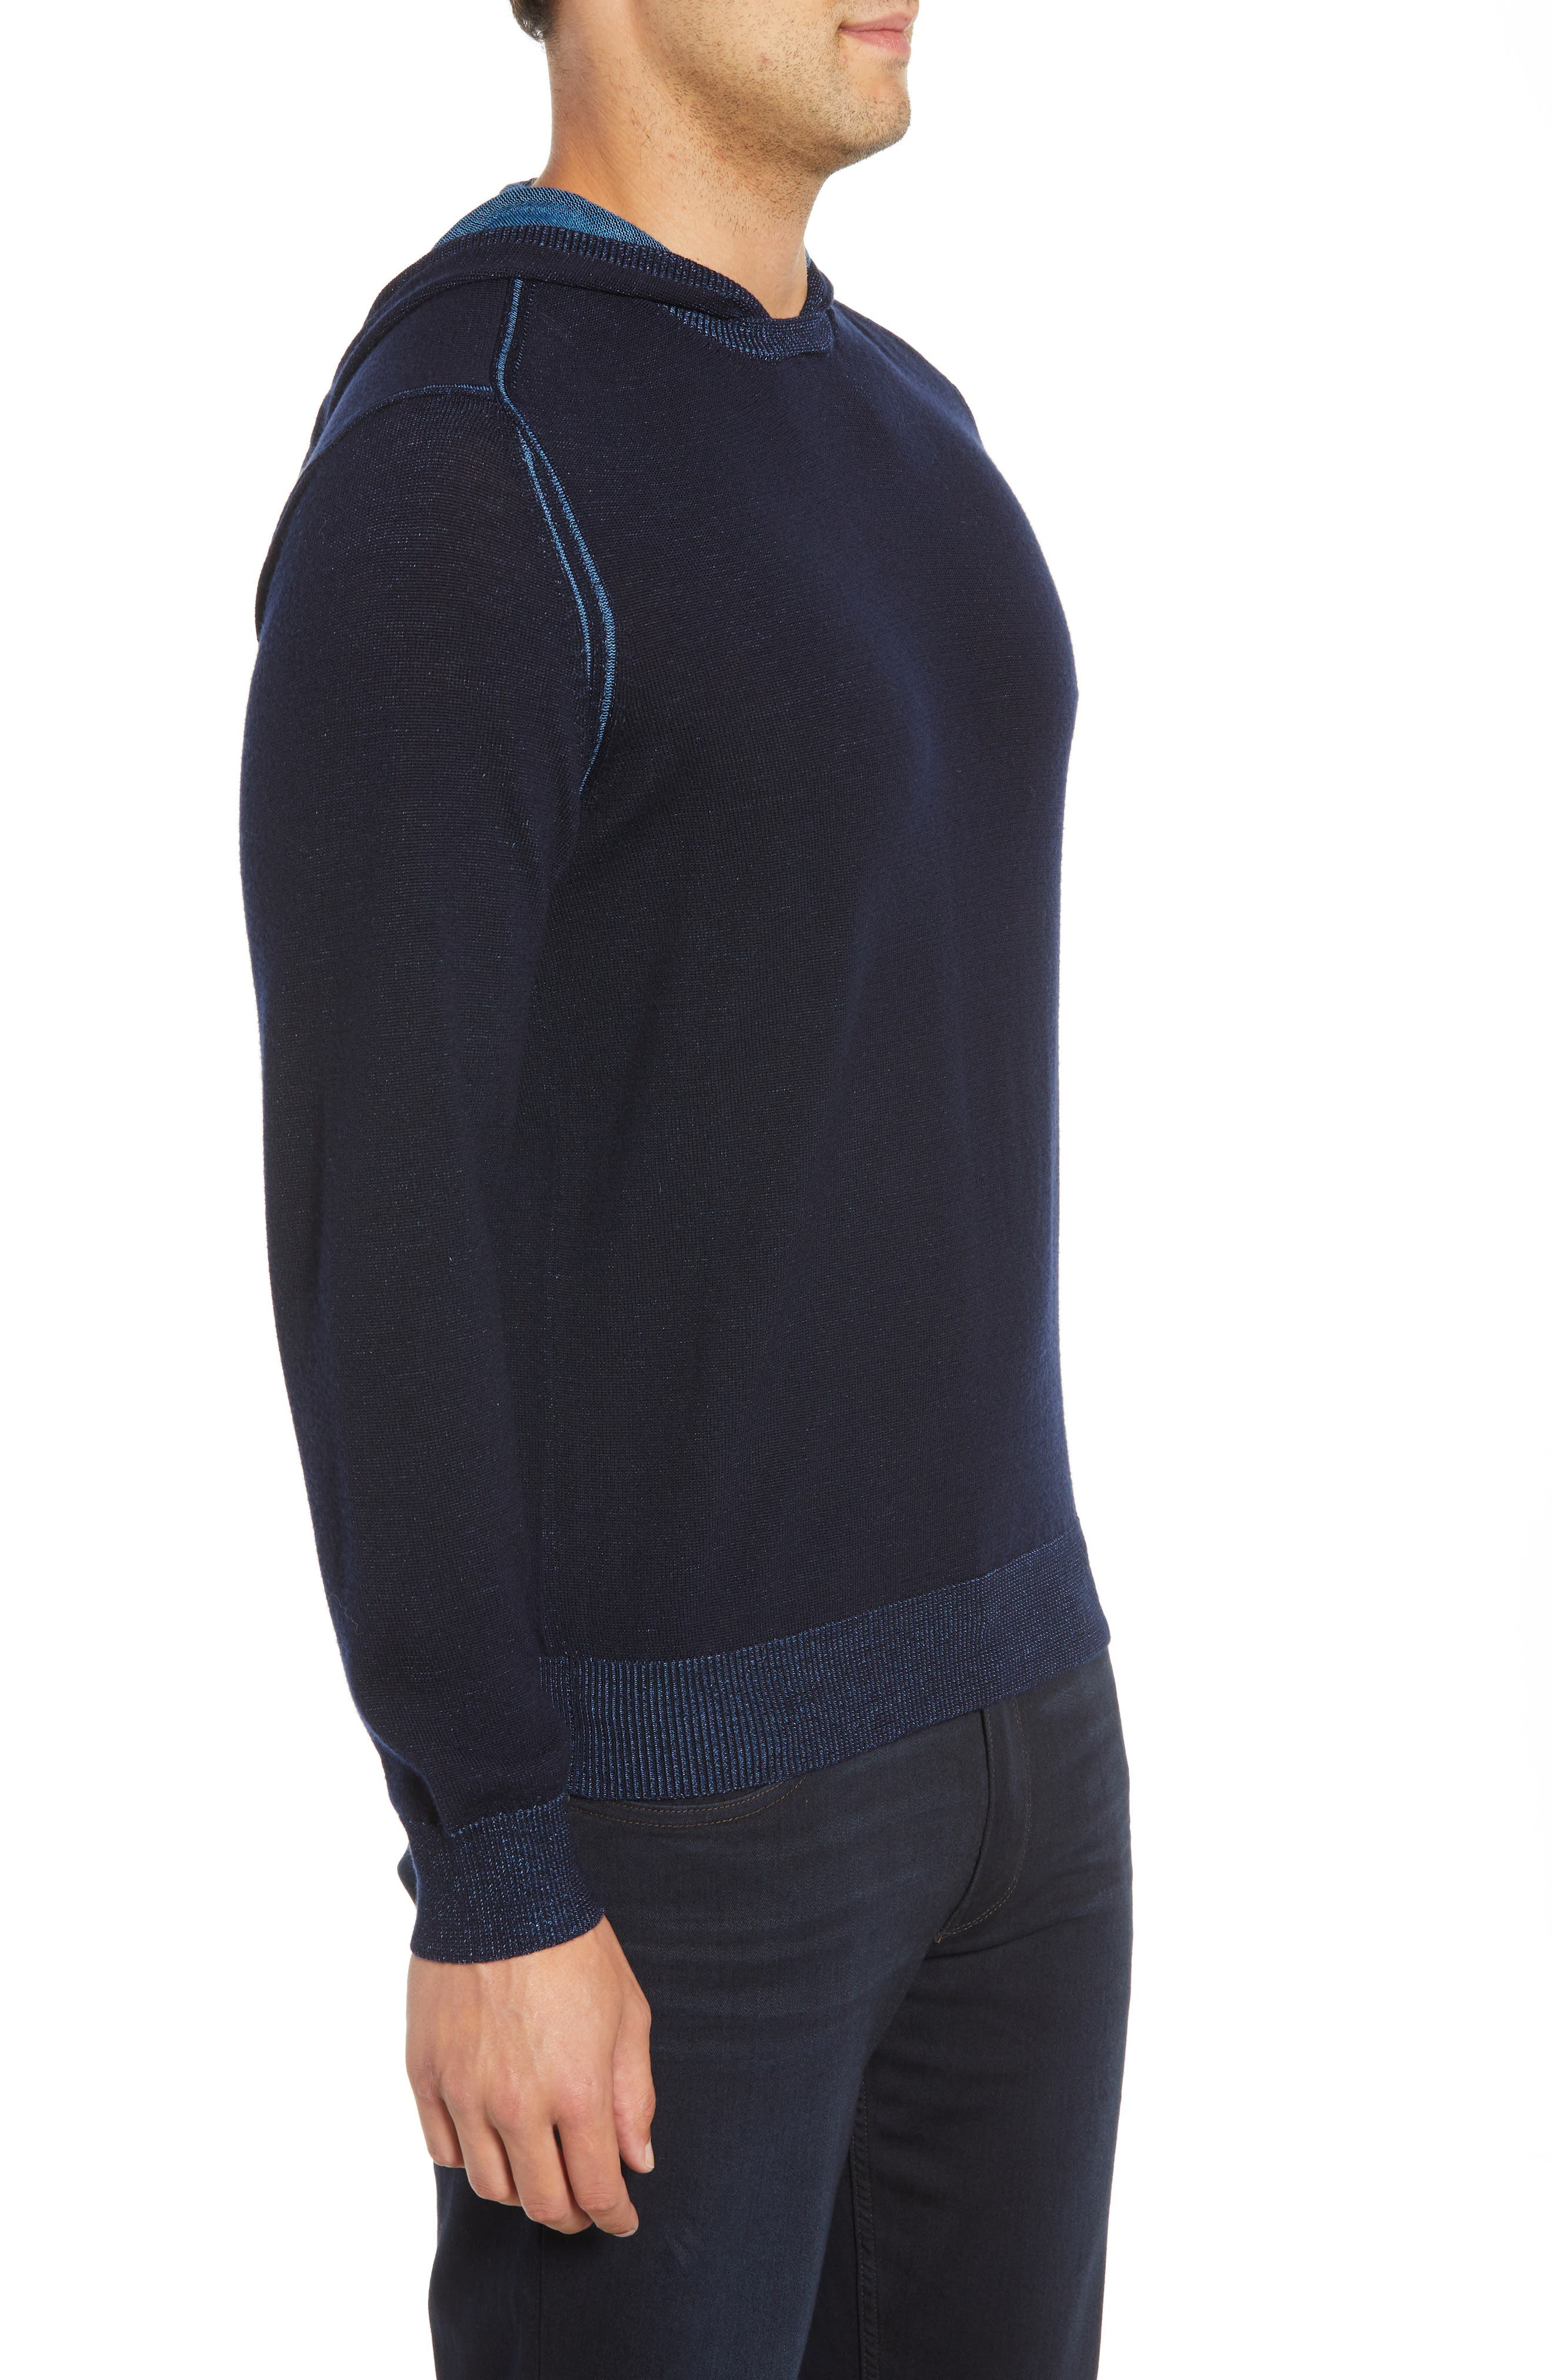 Hooded Pullover Sweater,                             Alternate thumbnail 3, color,                             NIGHT BLUE